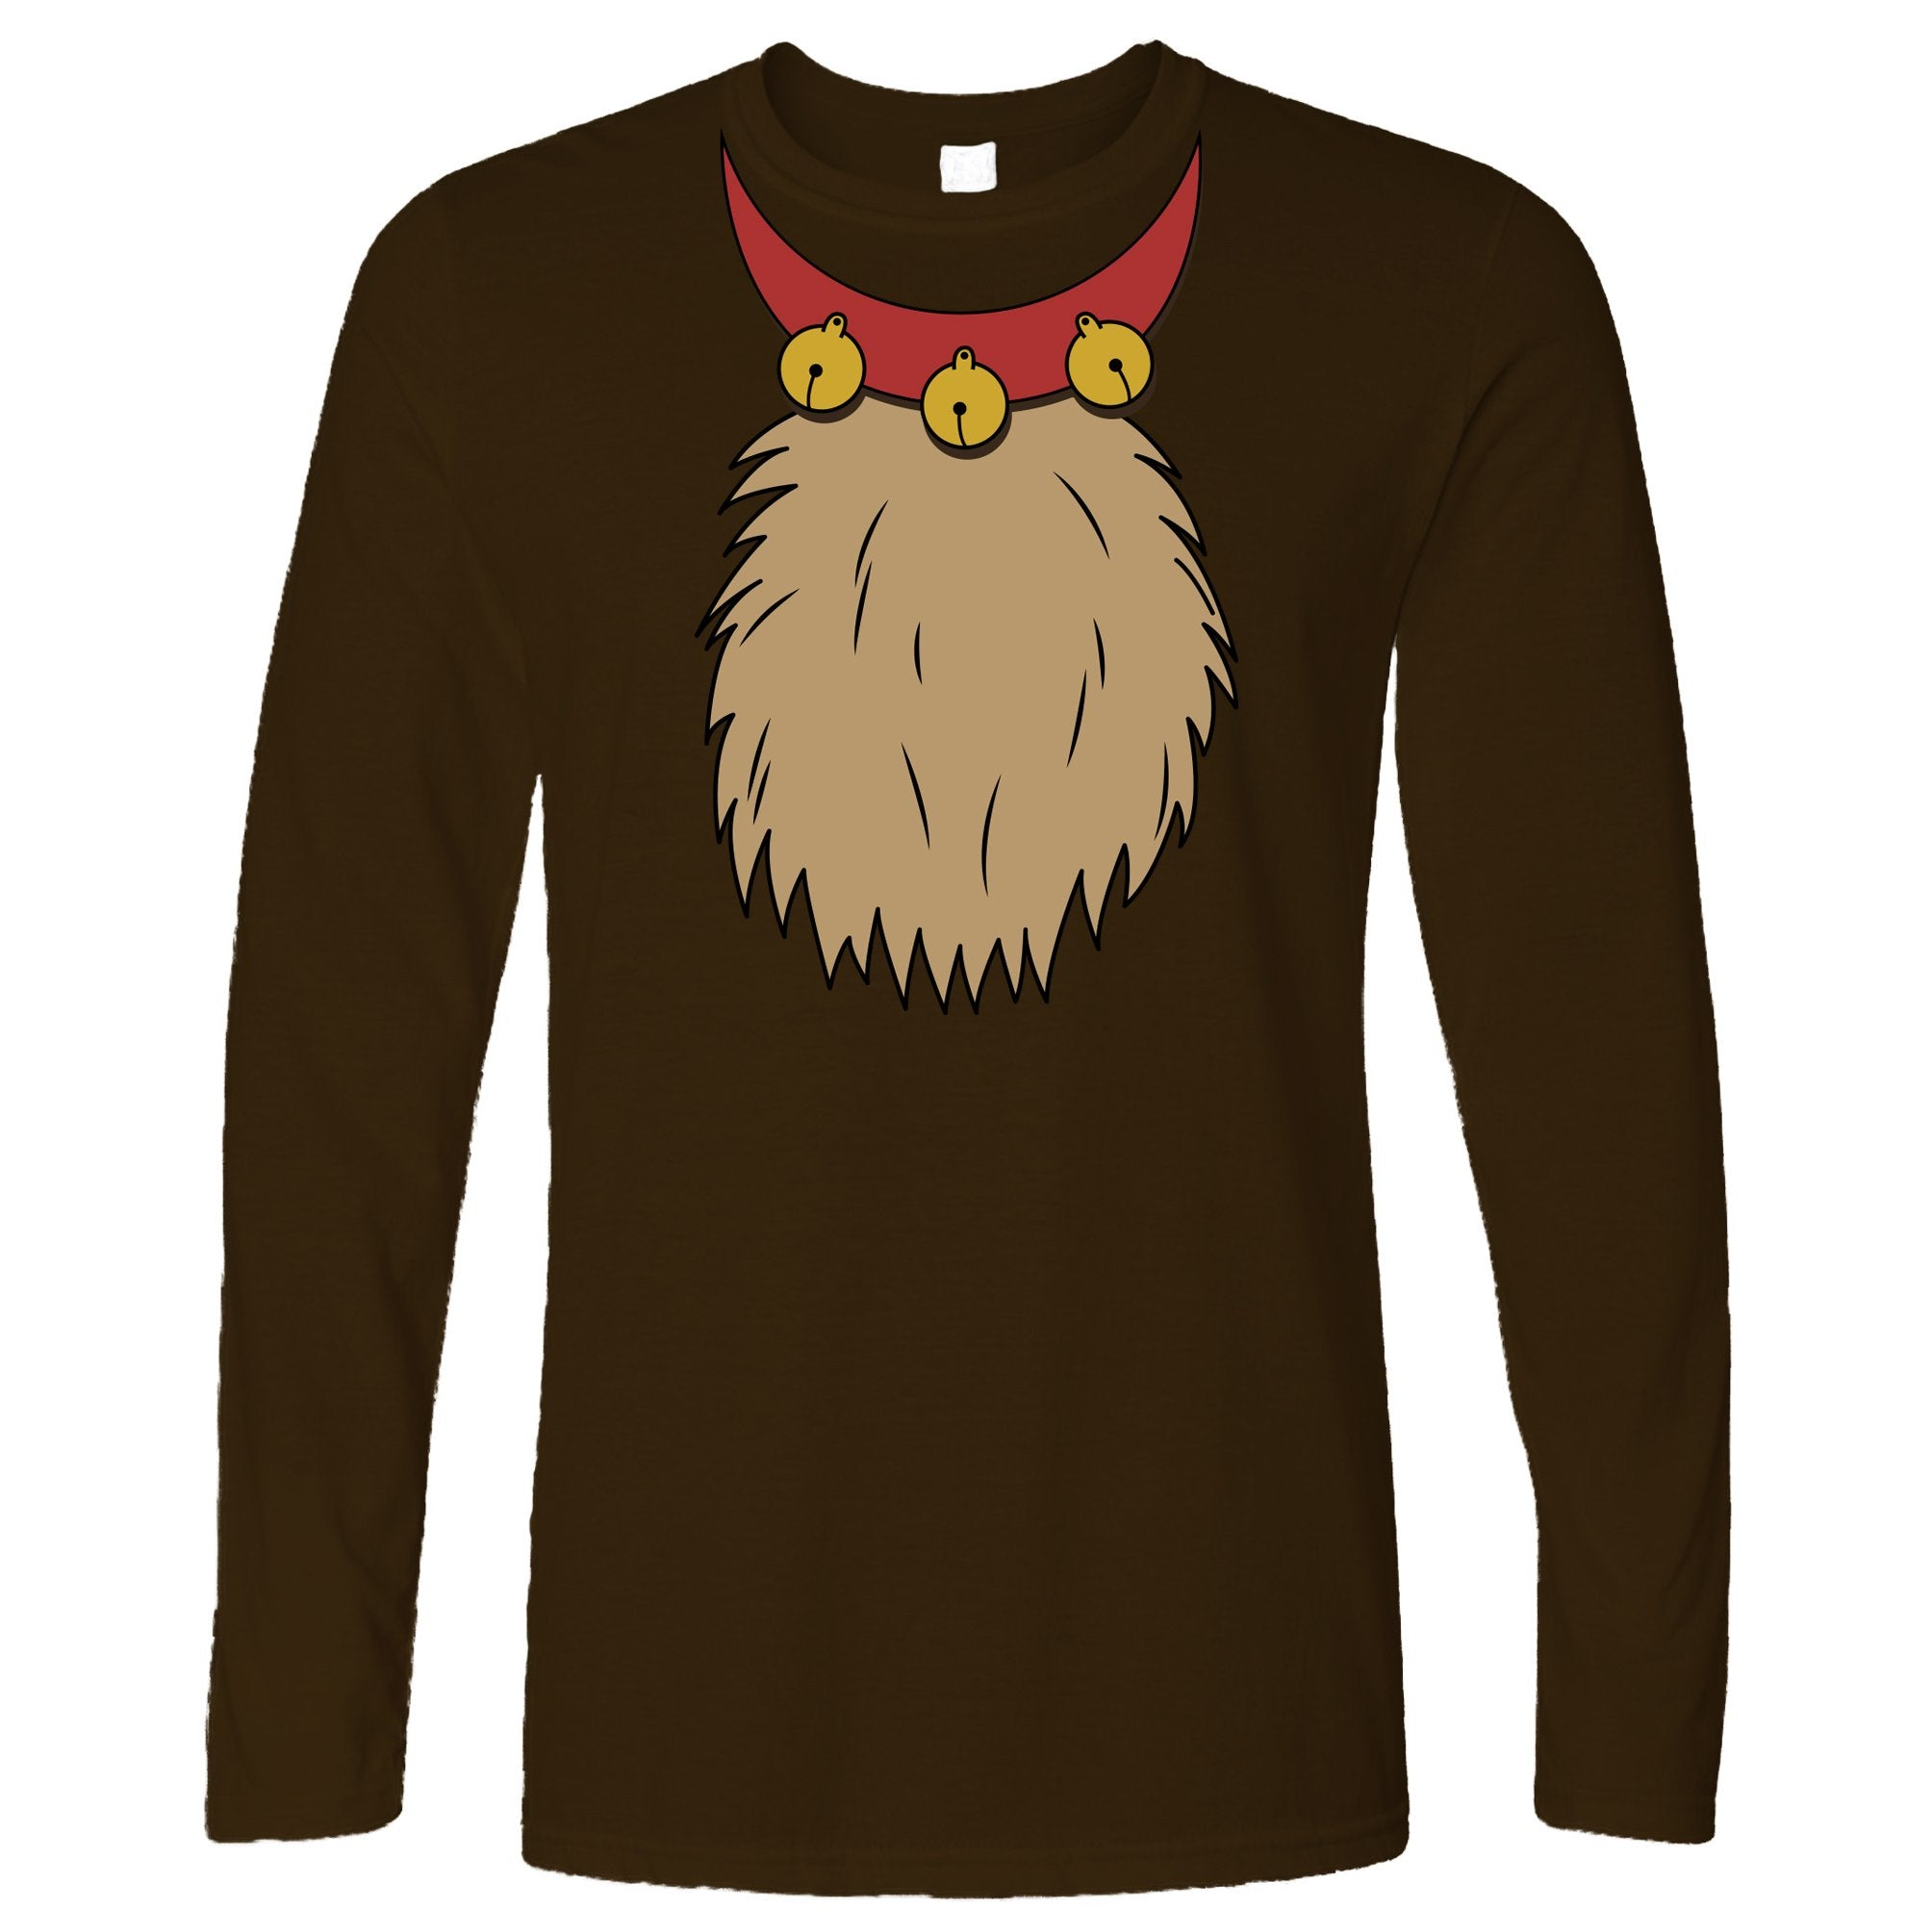 Novelty Christmas Long Sleeve Rudolf The Reindeer Costume T-Shirt